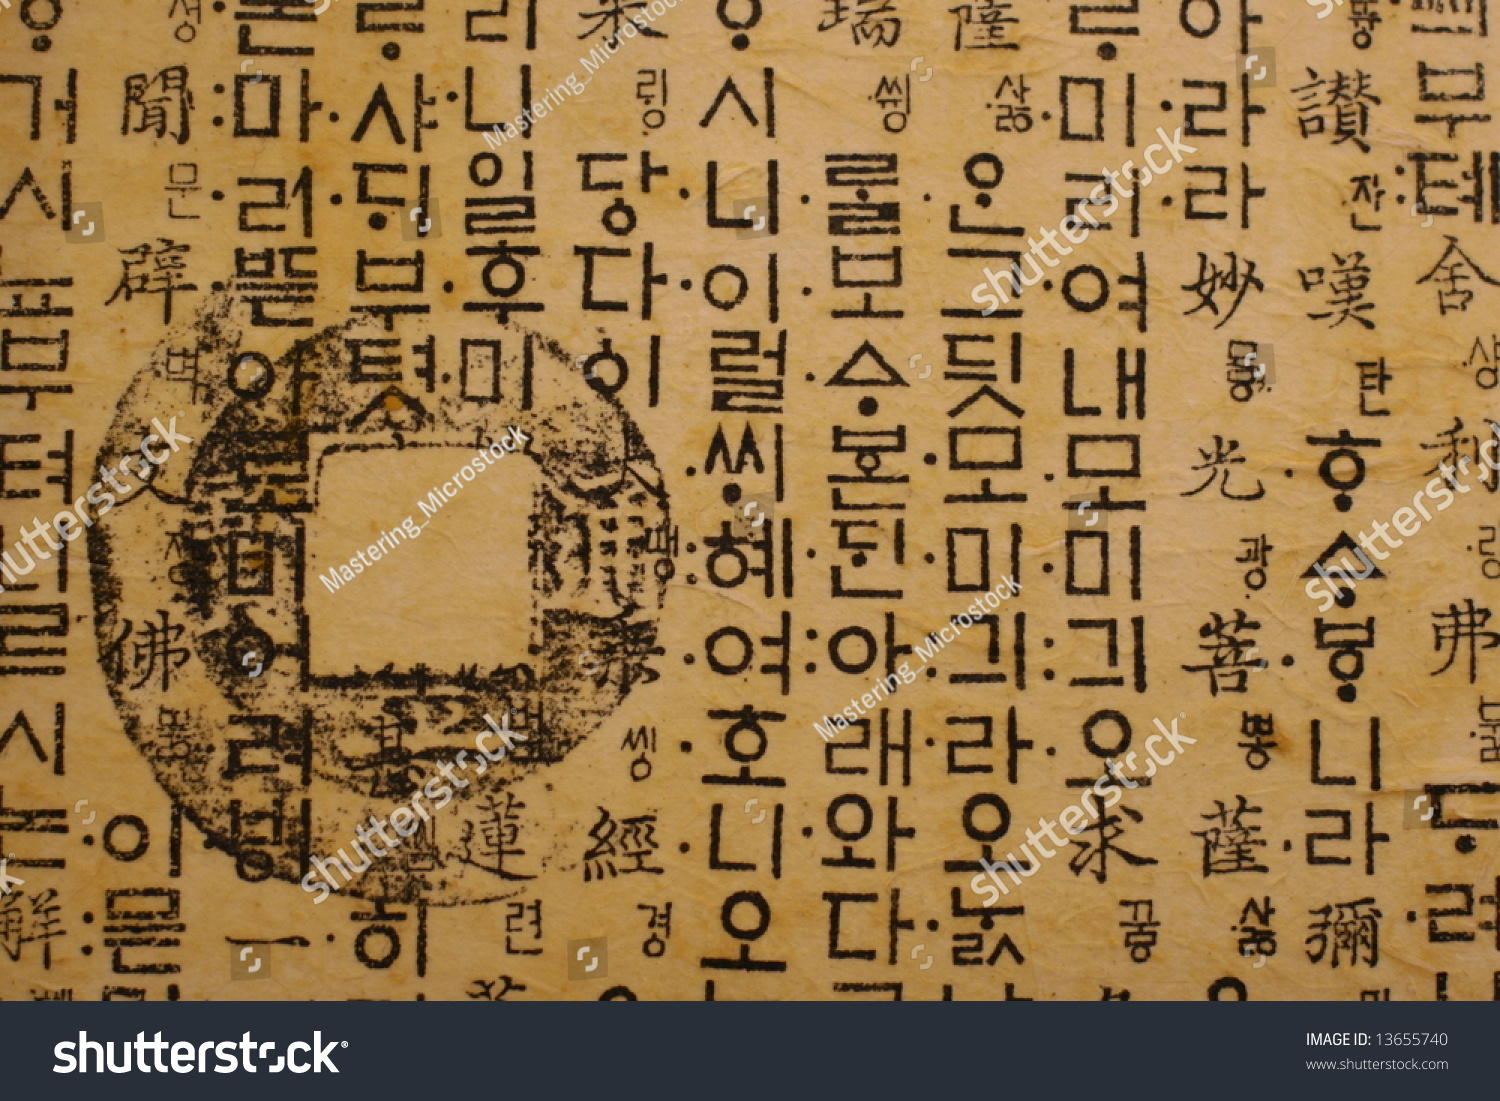 korean word wallpaper - photo #31